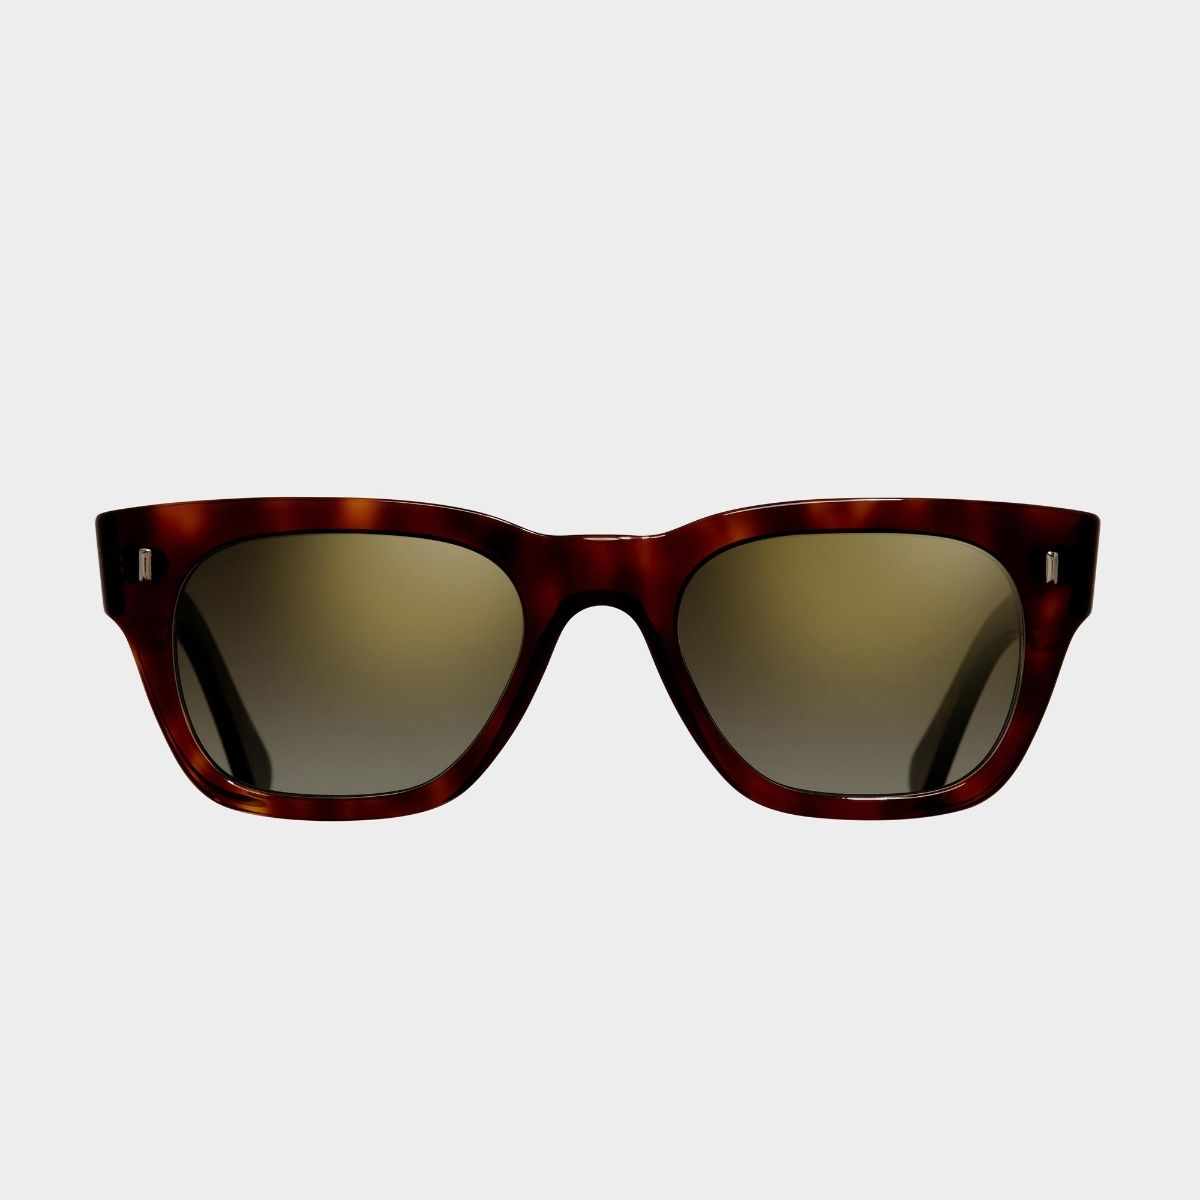 0772V2 Square Sunglasses-Dark Turtle